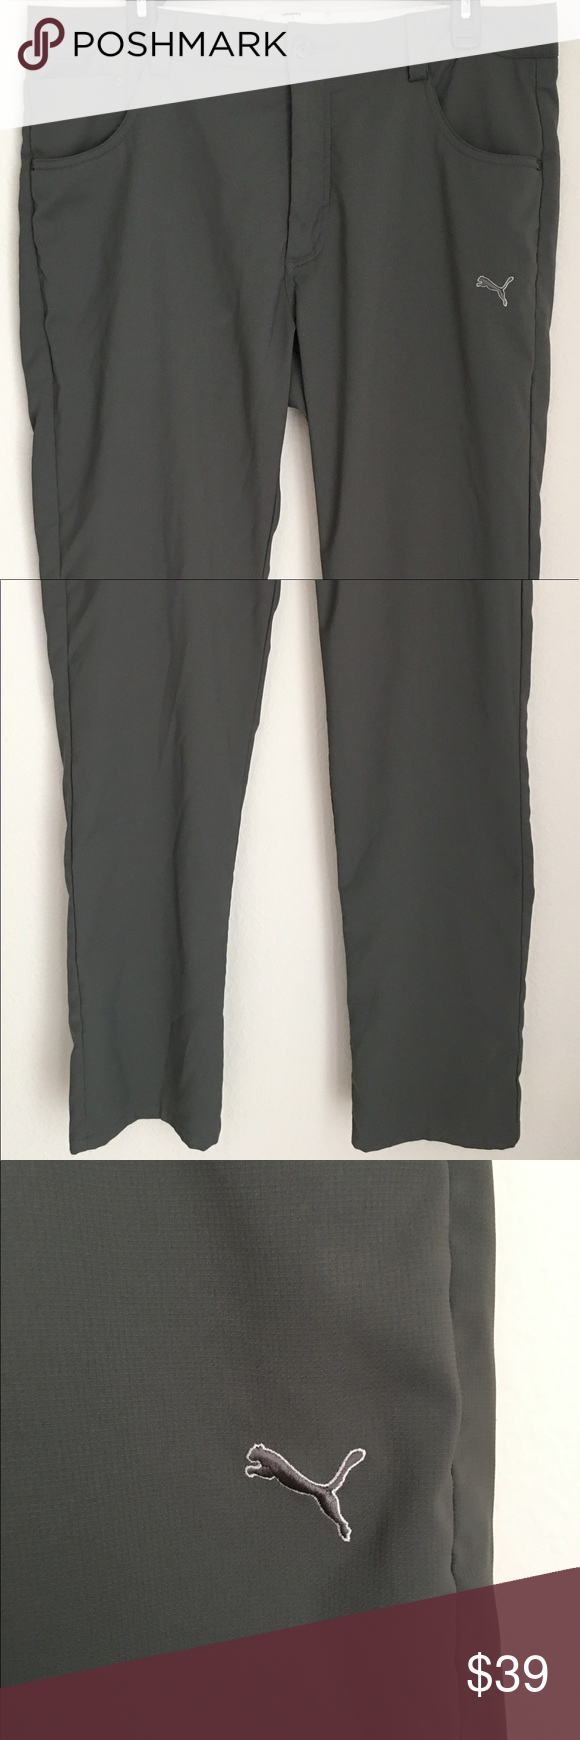 9e9400d129f0 Puma Sport Lifestyle Dry Cell Golf Pants Like new condition